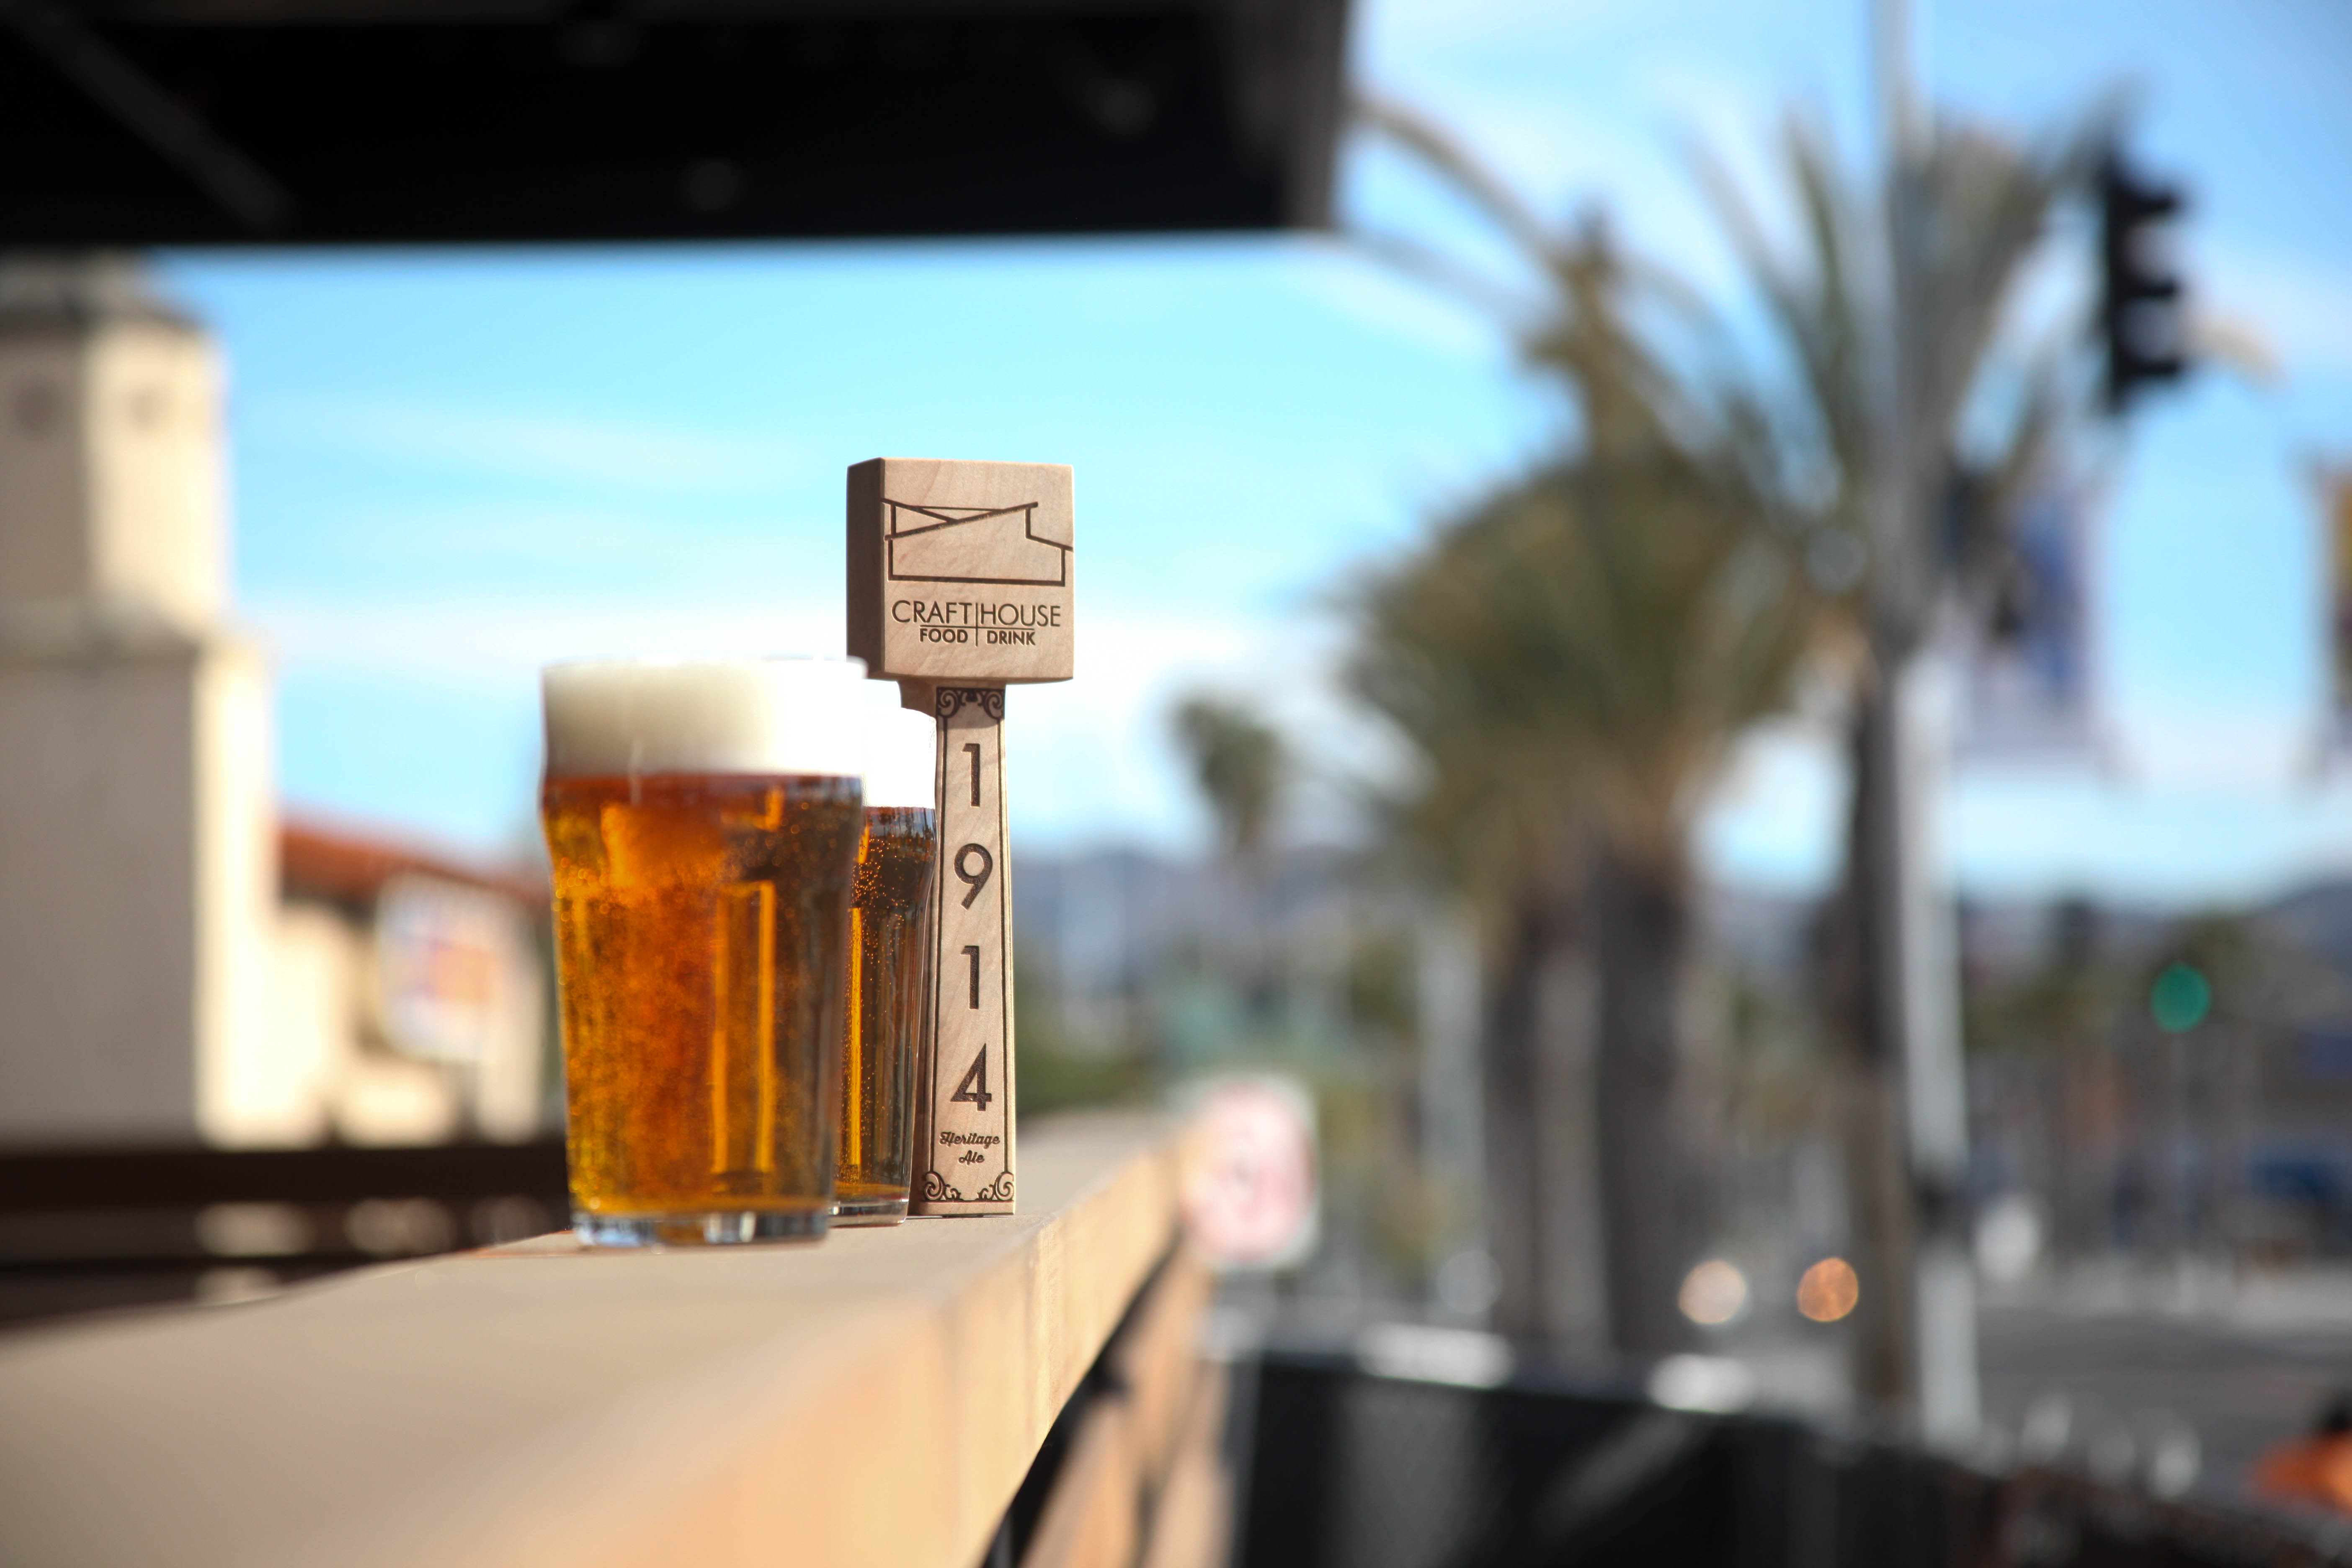 The Craft House's custom tap handle—made to dispense their house beer, 1914 Heritage Ale—is displayed on the restaurant's patio.